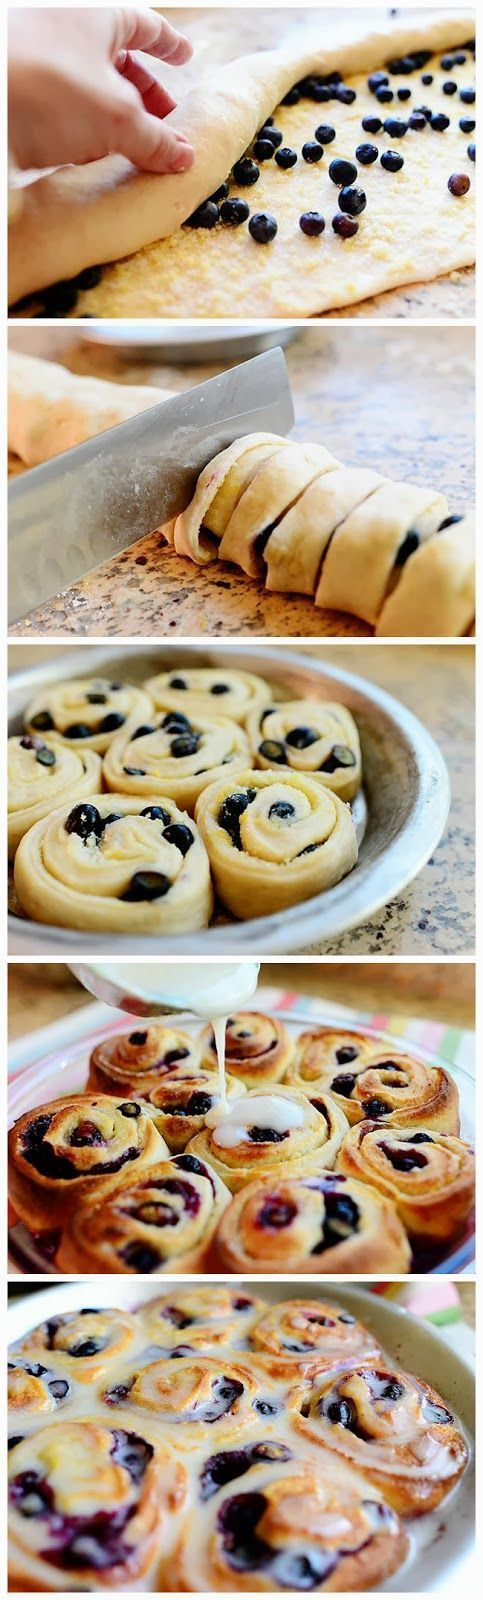 Blueberry Lemon Sweet Rolls - Joybx % acid reflux recipes in detail